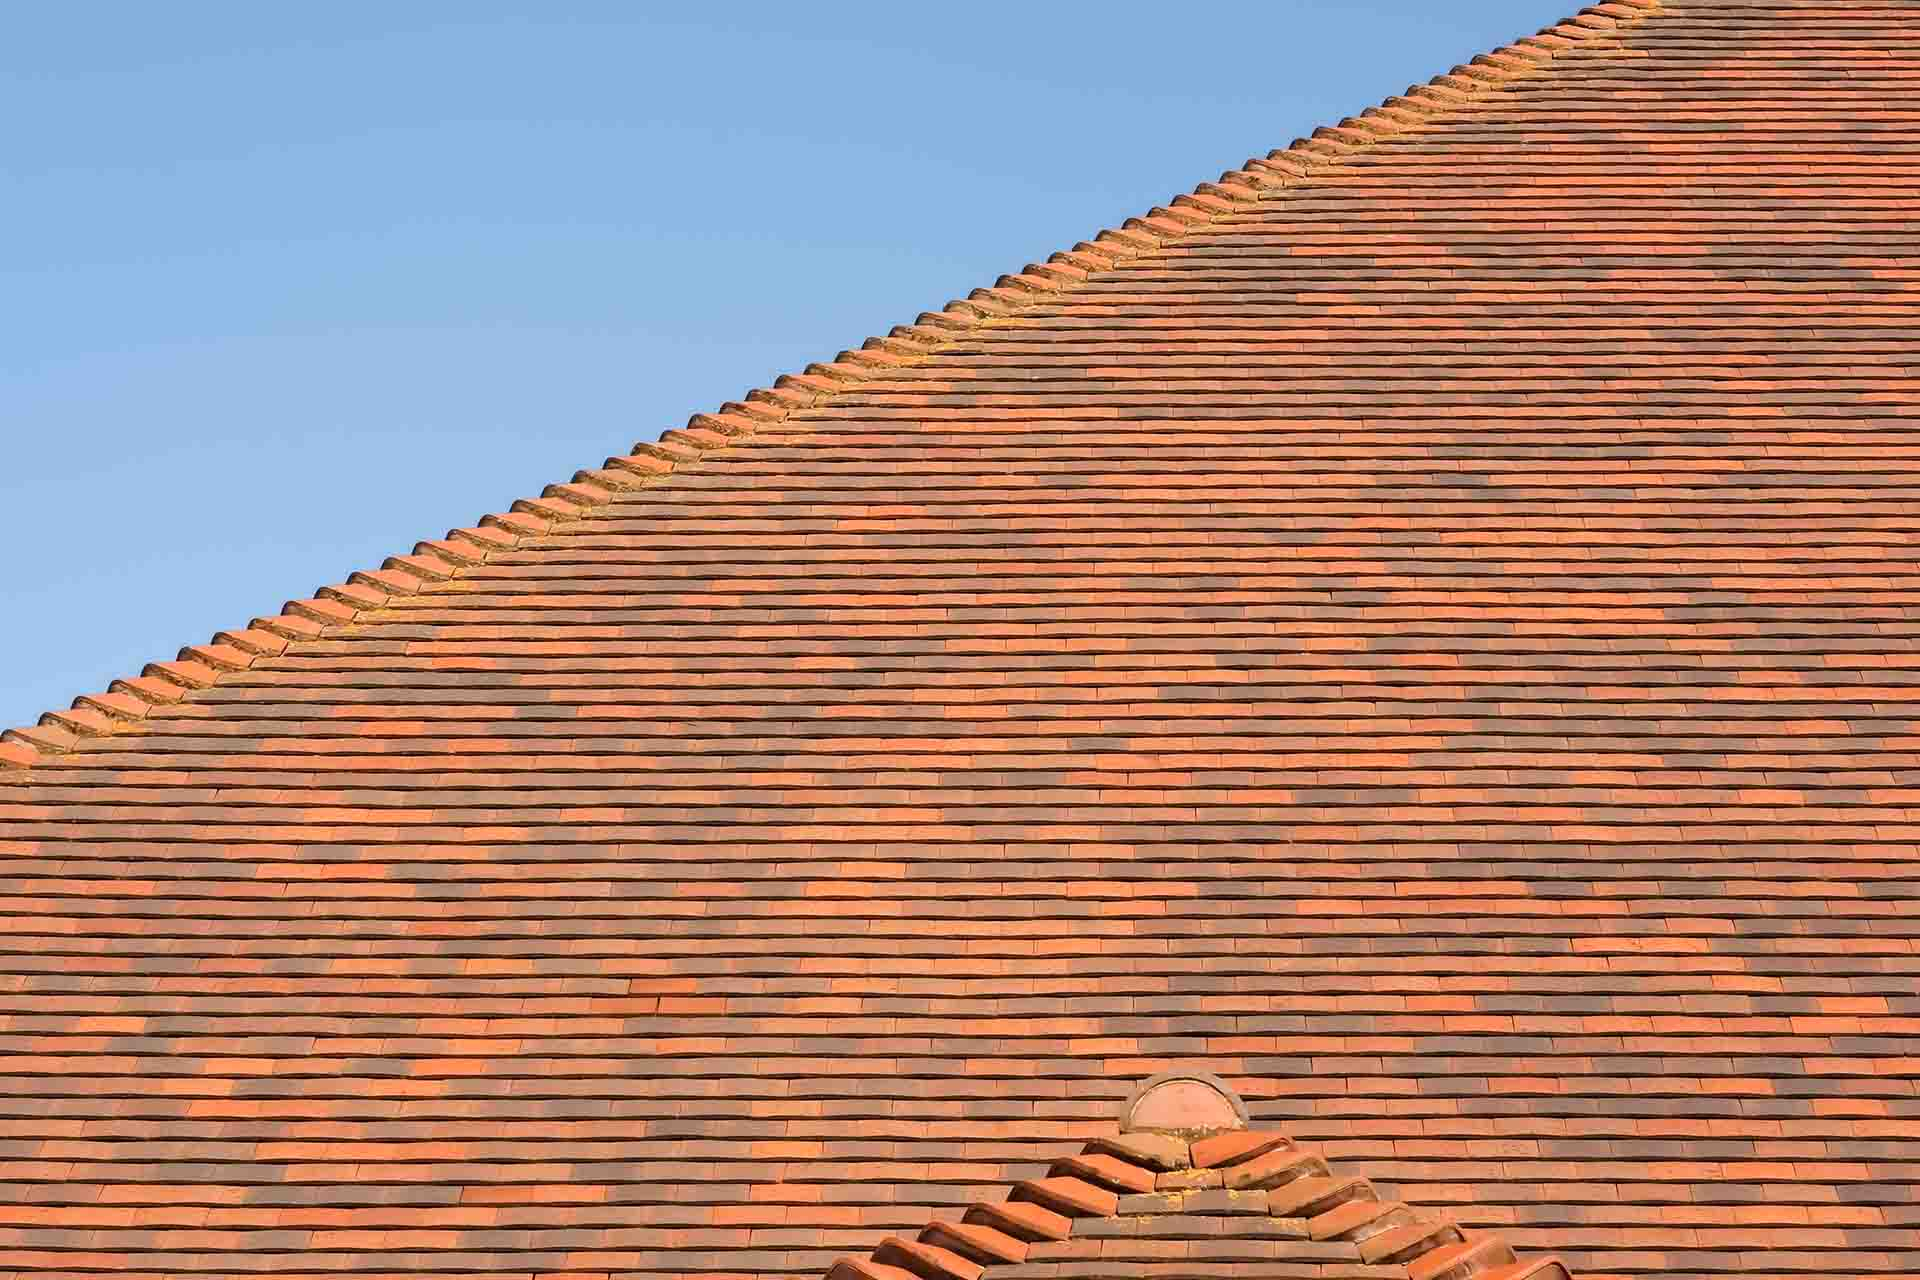 How do I find a reputable roofer?